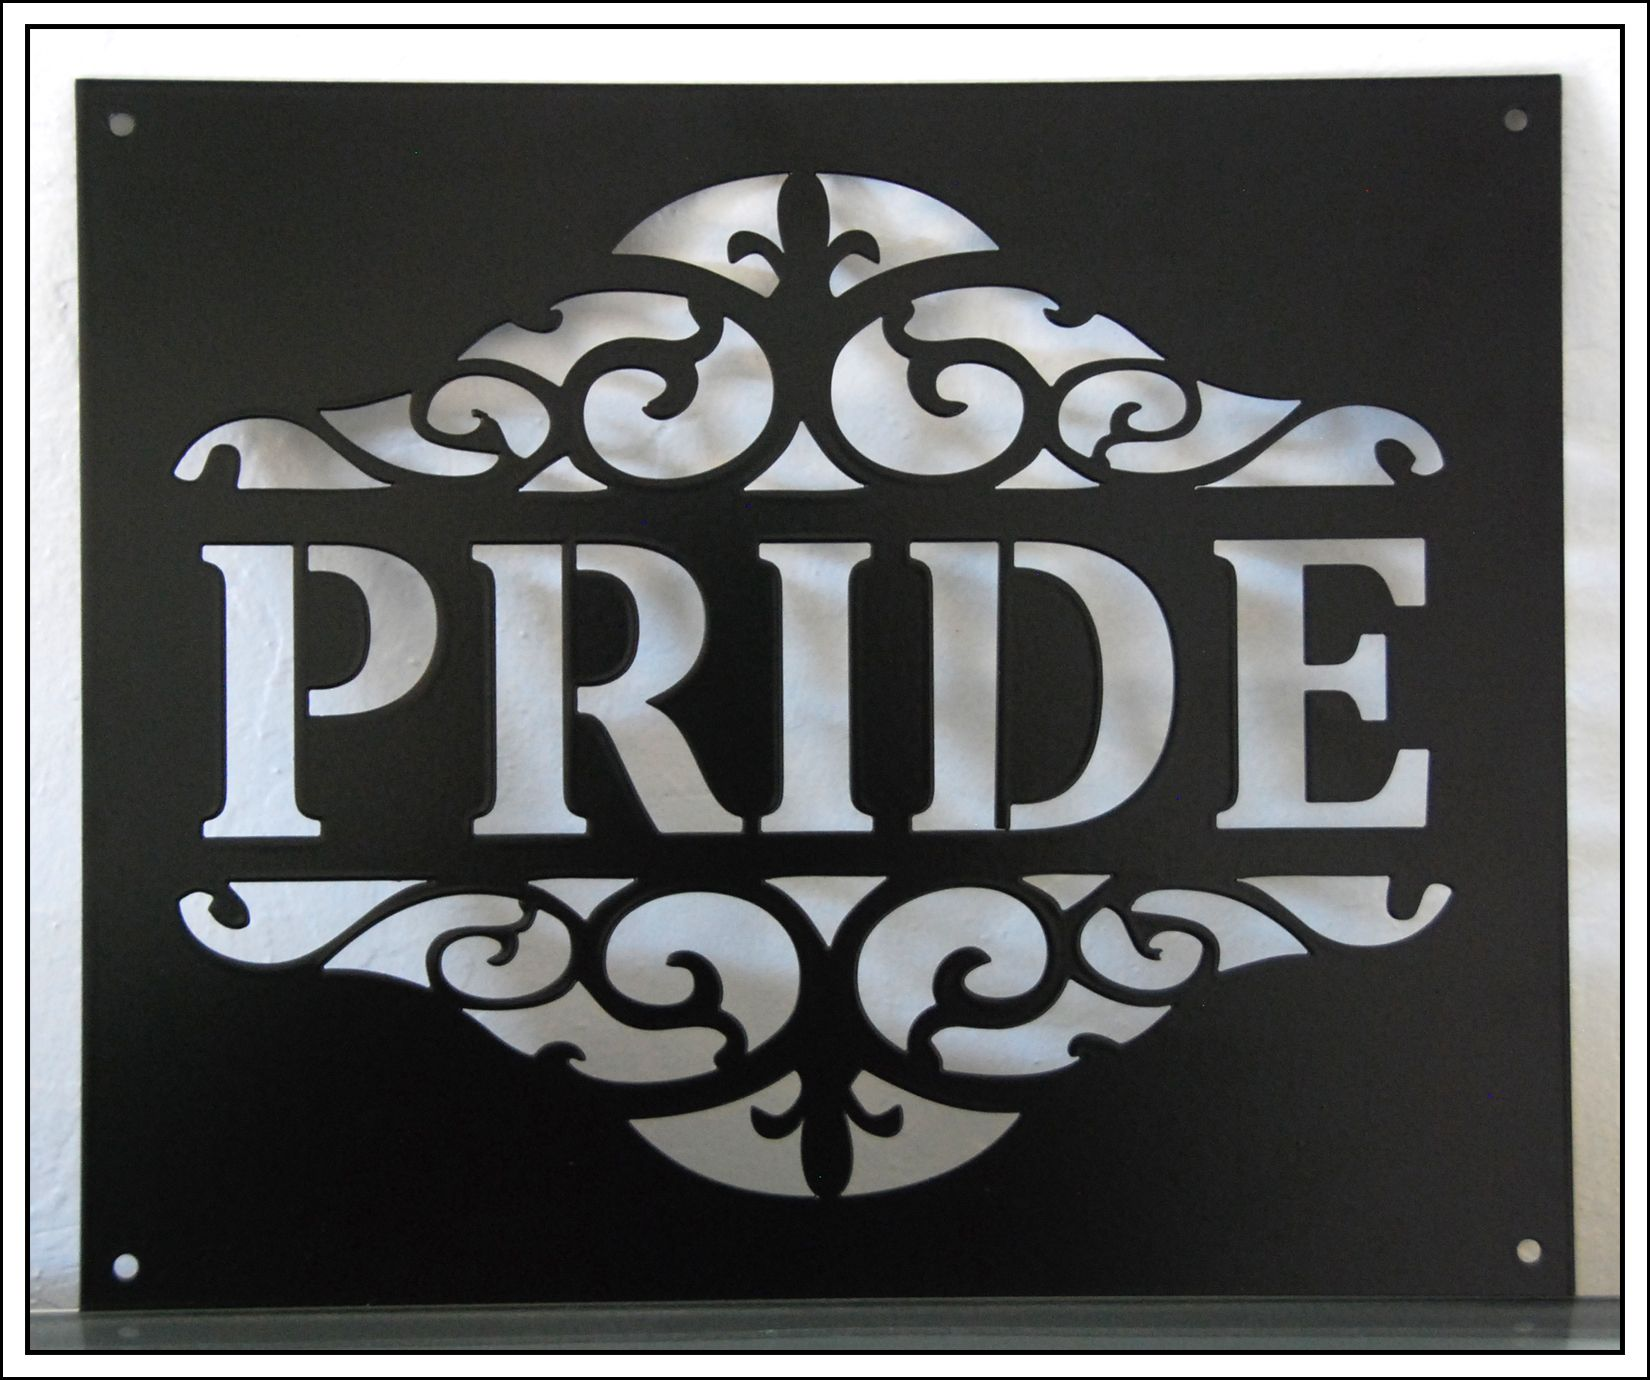 Laser Cut Metal Signs >> Made With Pride Custom Laser Cut Metal Signs In Hollister Ca